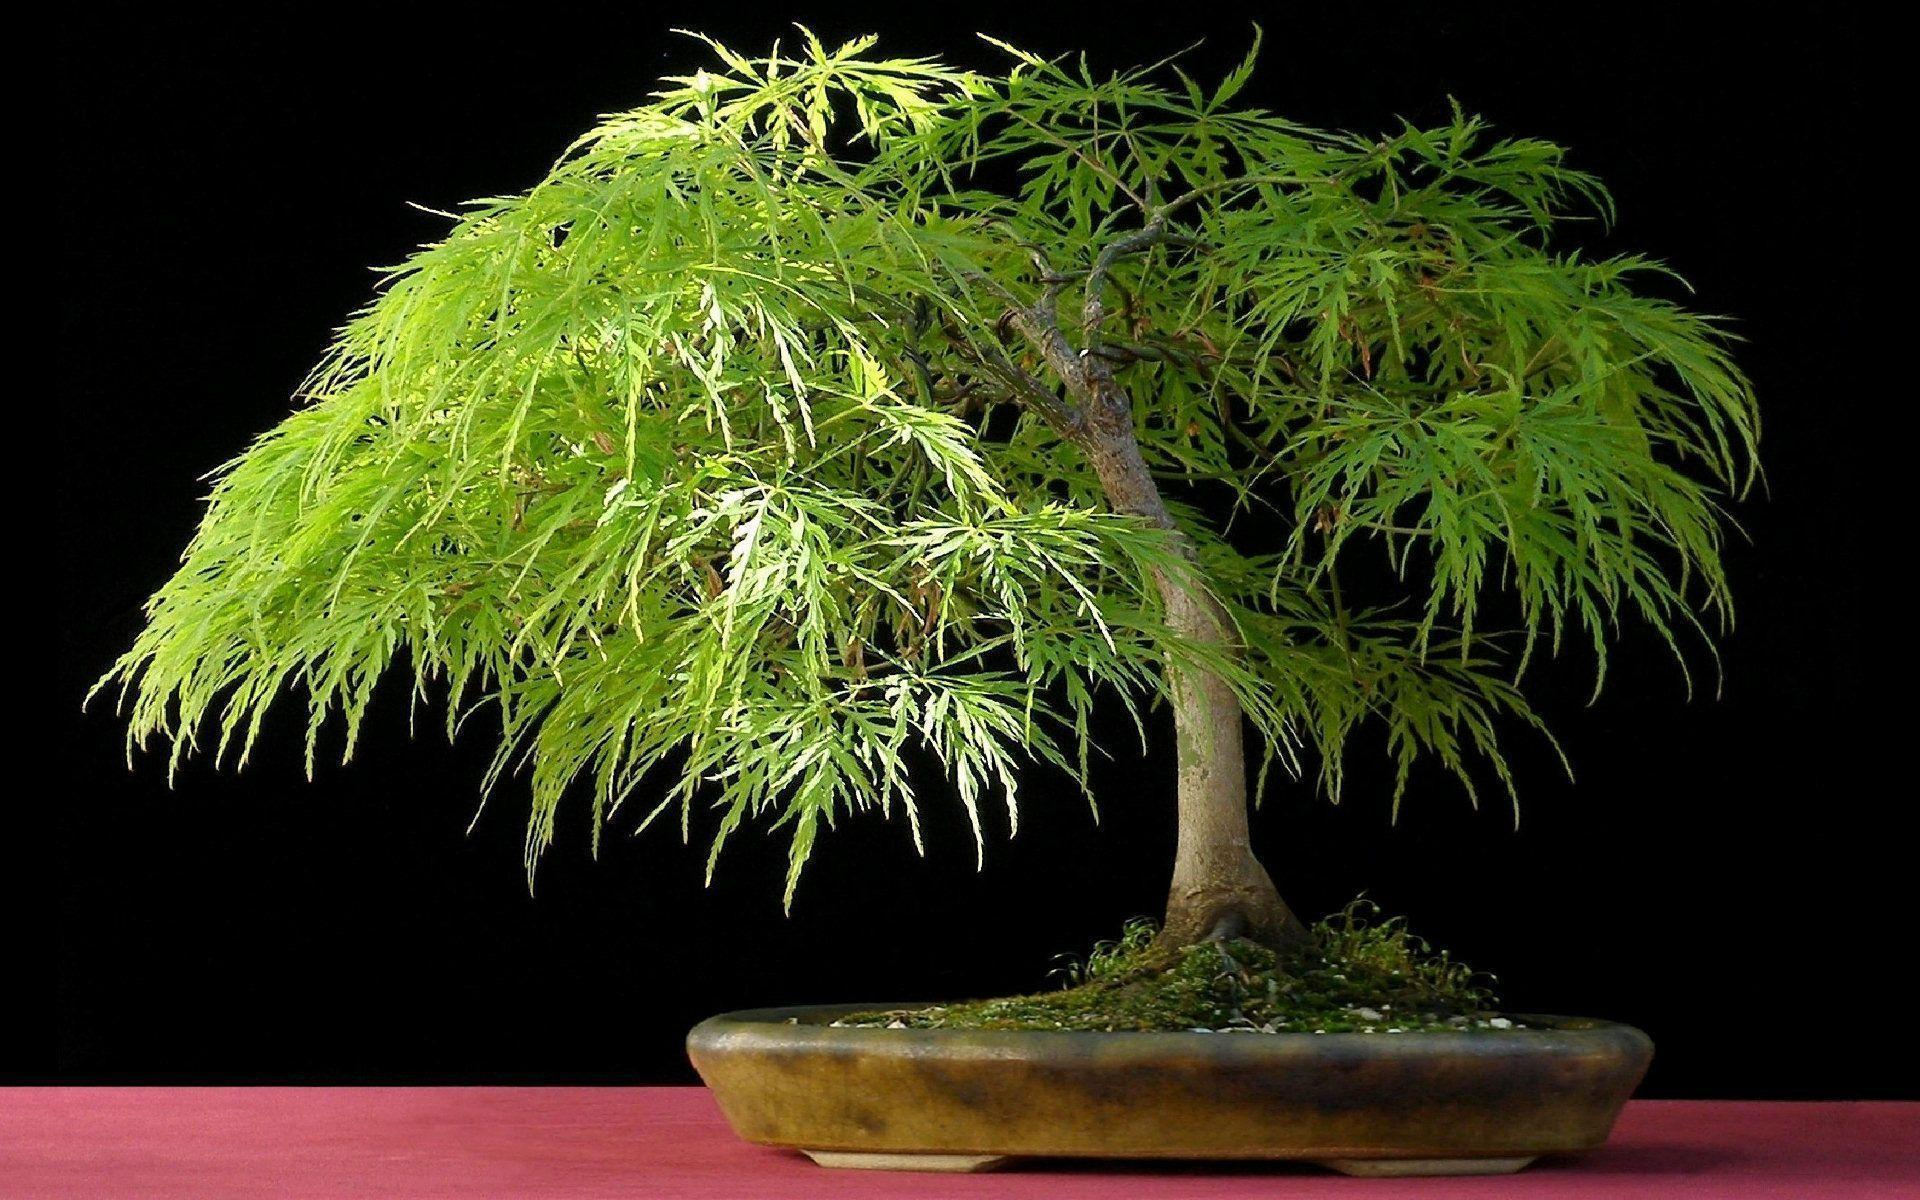 Bonsai Tree wallpaper - 451588